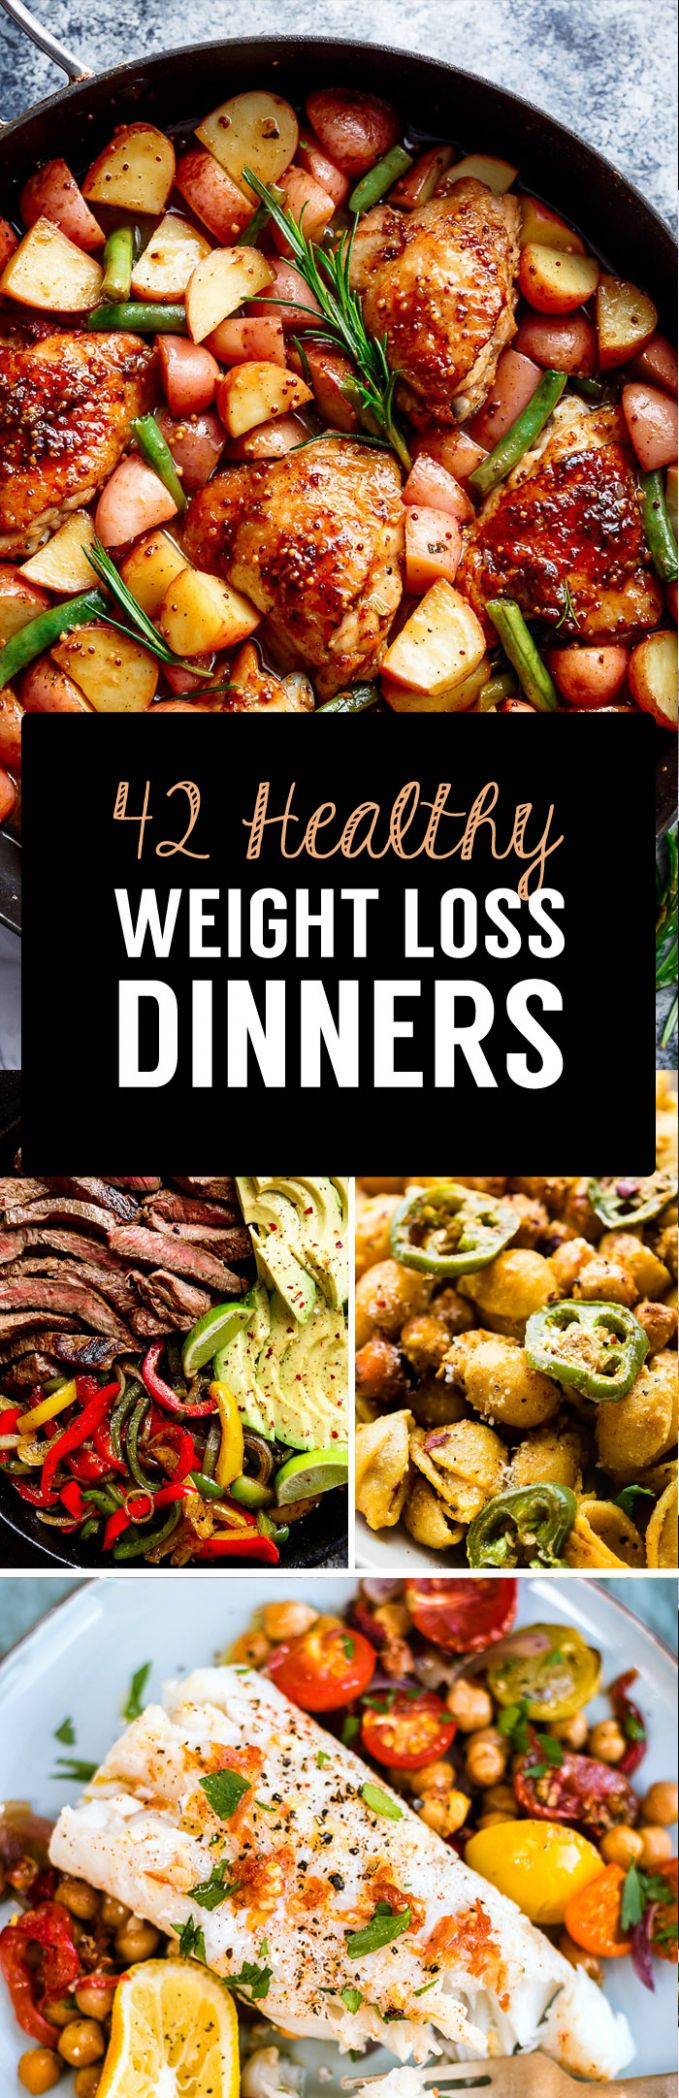 12 Weight Loss Dinner Recipes That Will Help You Shrink Belly Fat ..